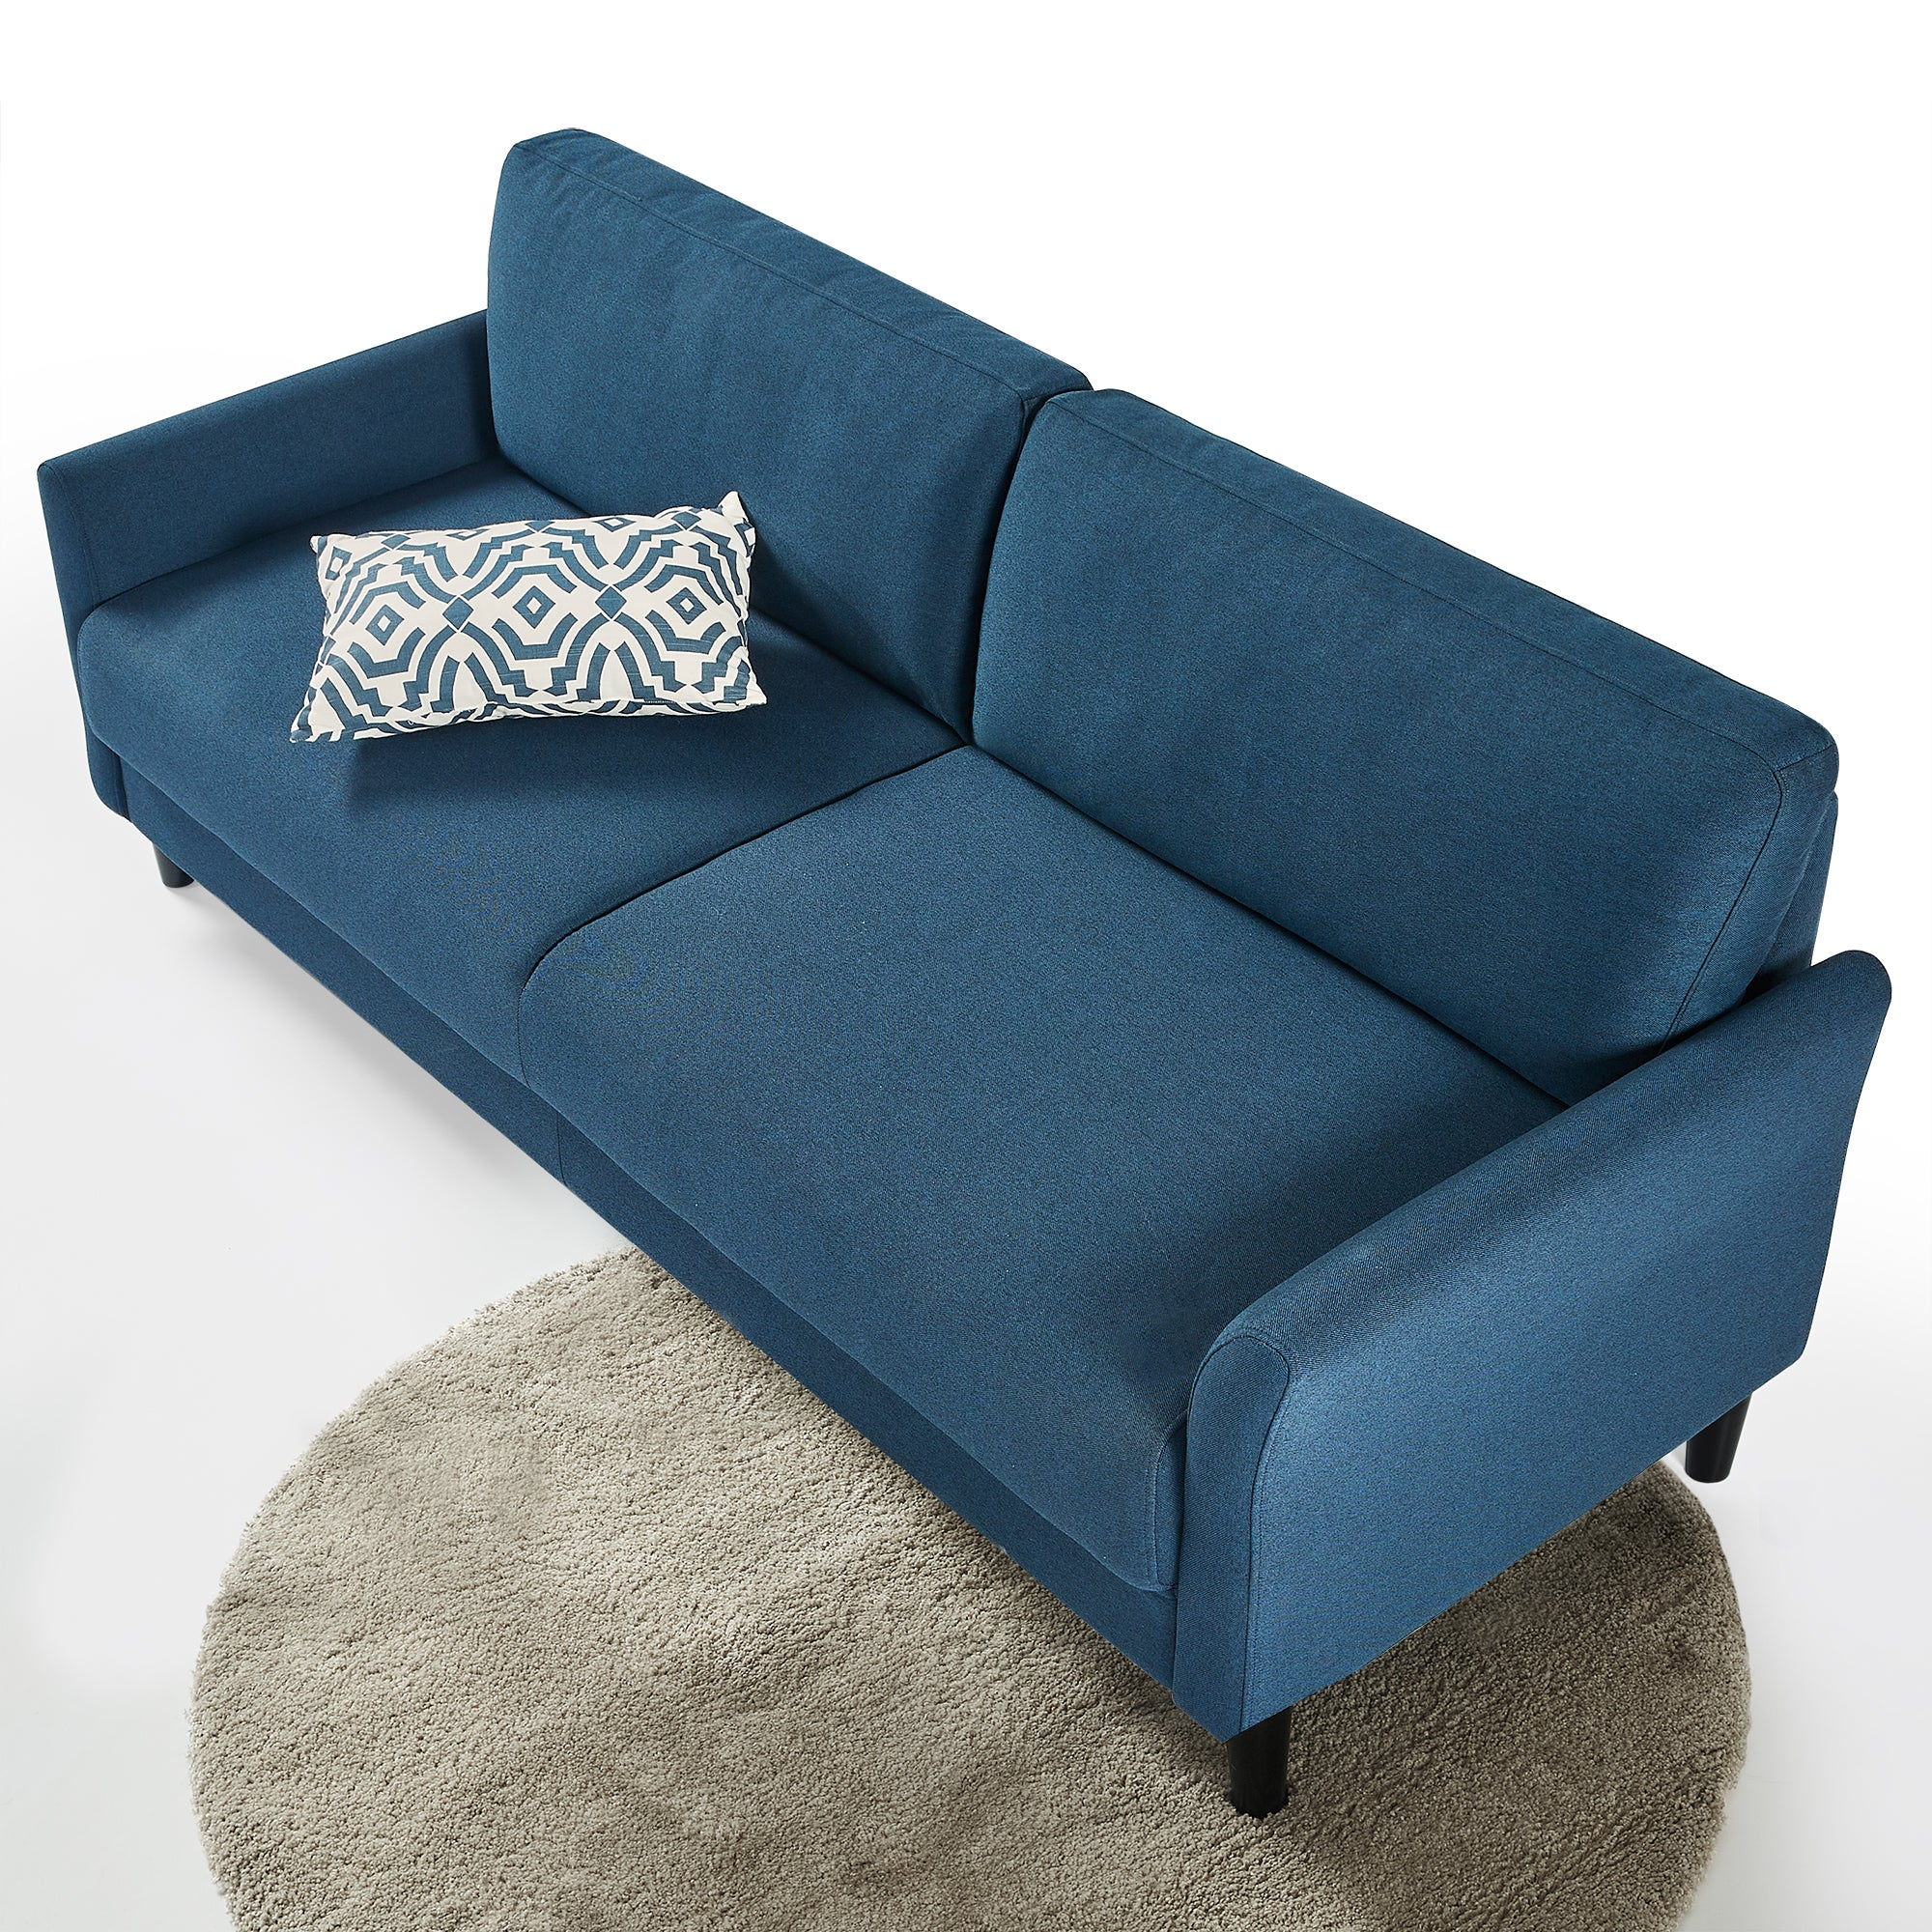 Zinus Jackie 3 Seater Sofa Couch - Blue Weave